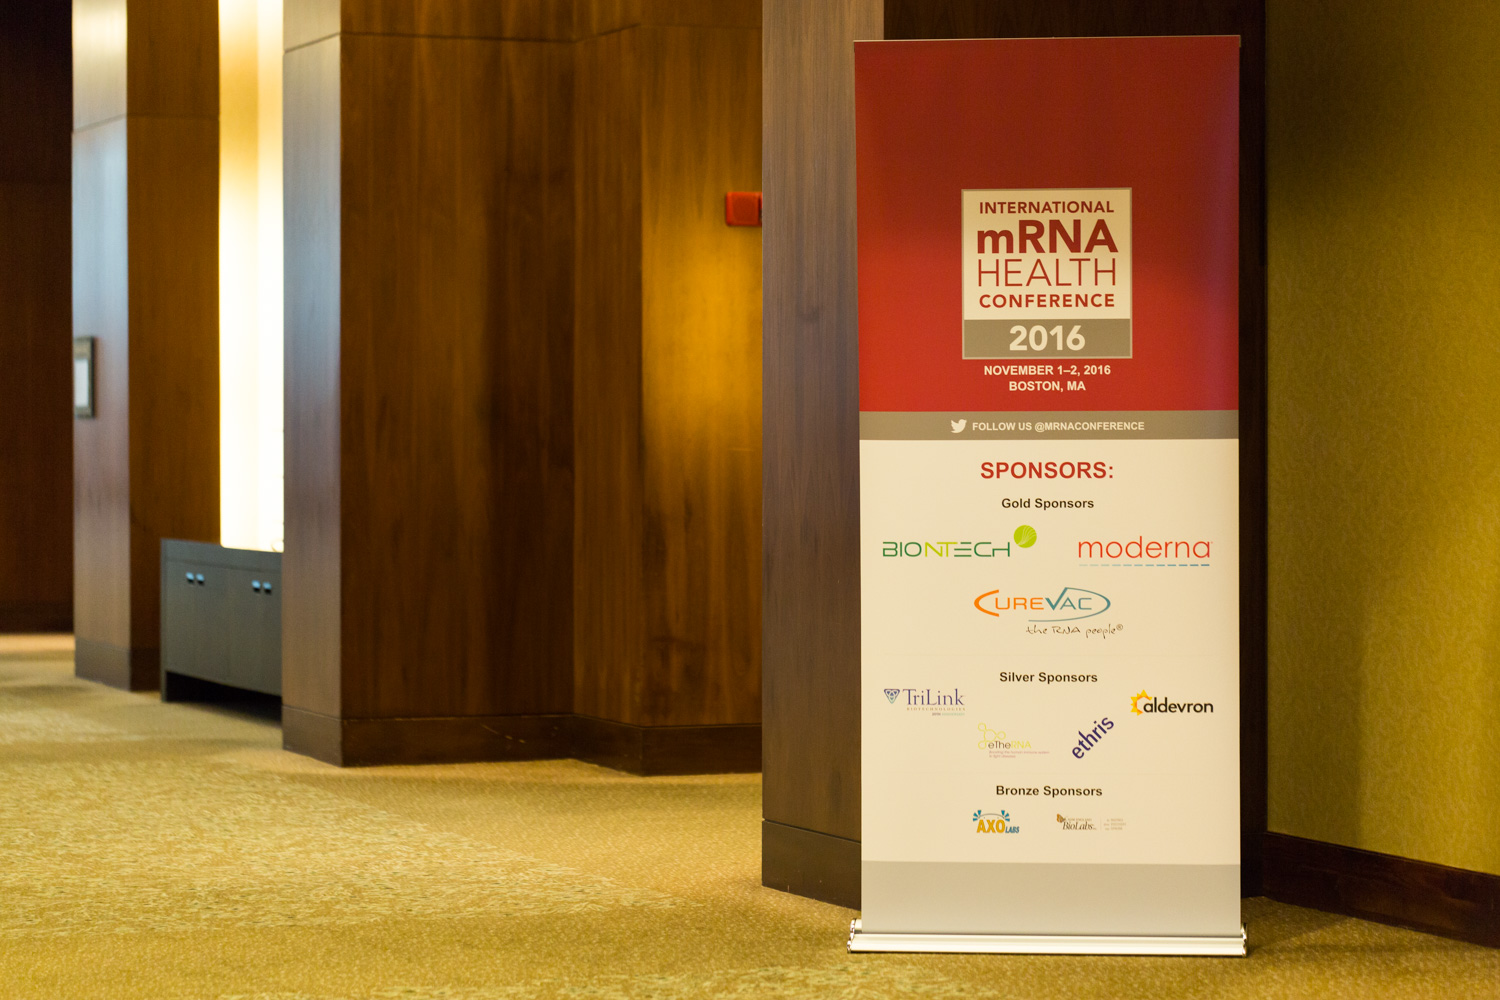 4th_International_mRNA_Health_Conference_in_2016_2